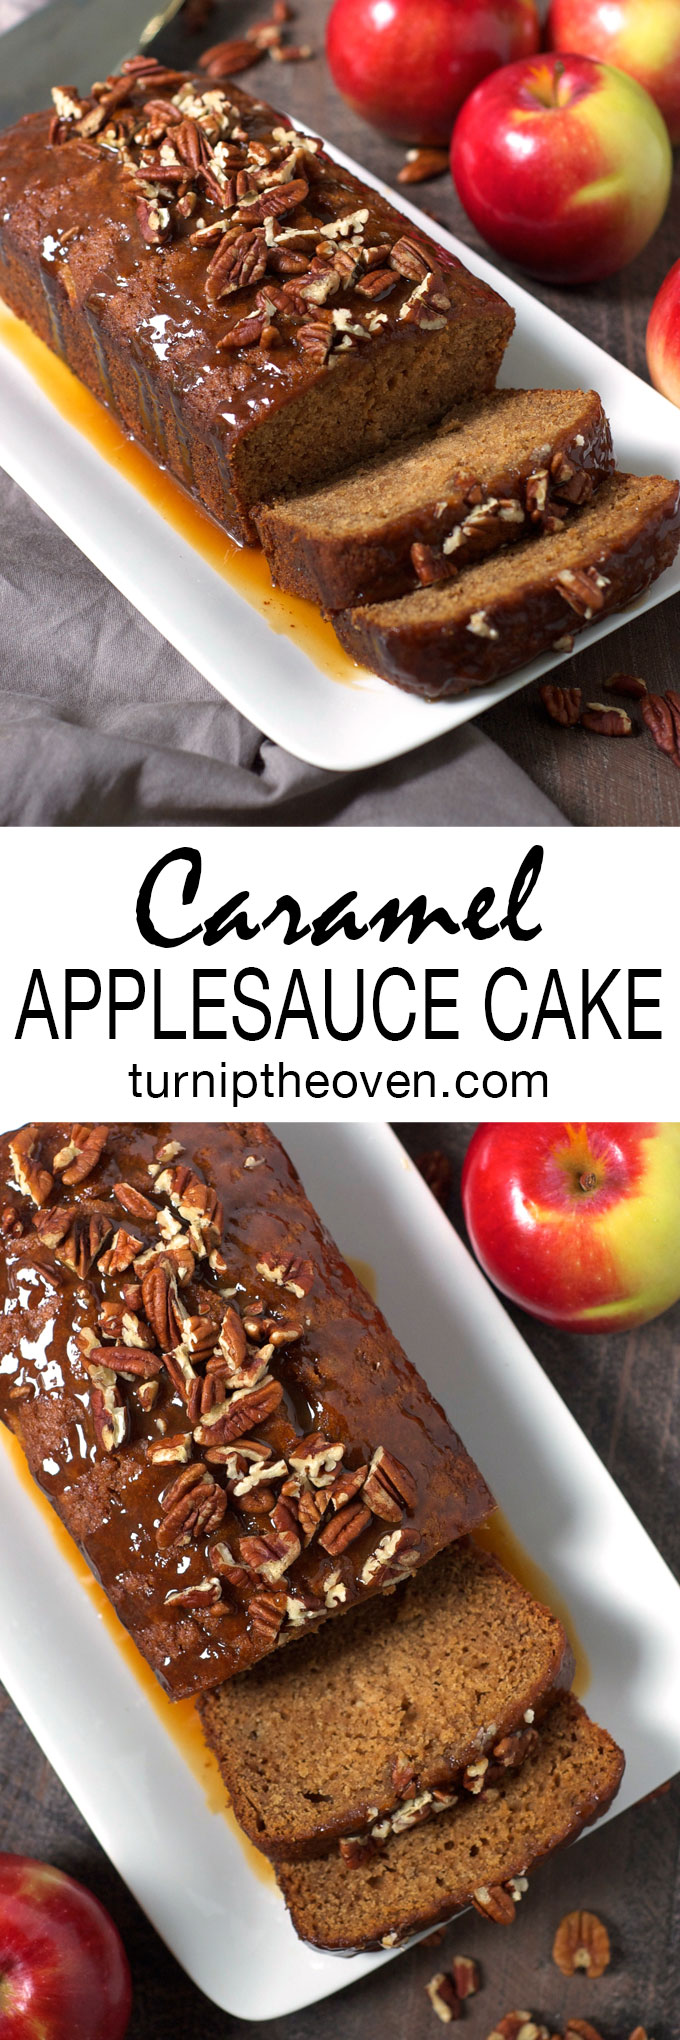 This simple, homey caramel applesauce cake has caramel sauce swirled in the batter and poured over the top! It's the ultimate fall dessert.